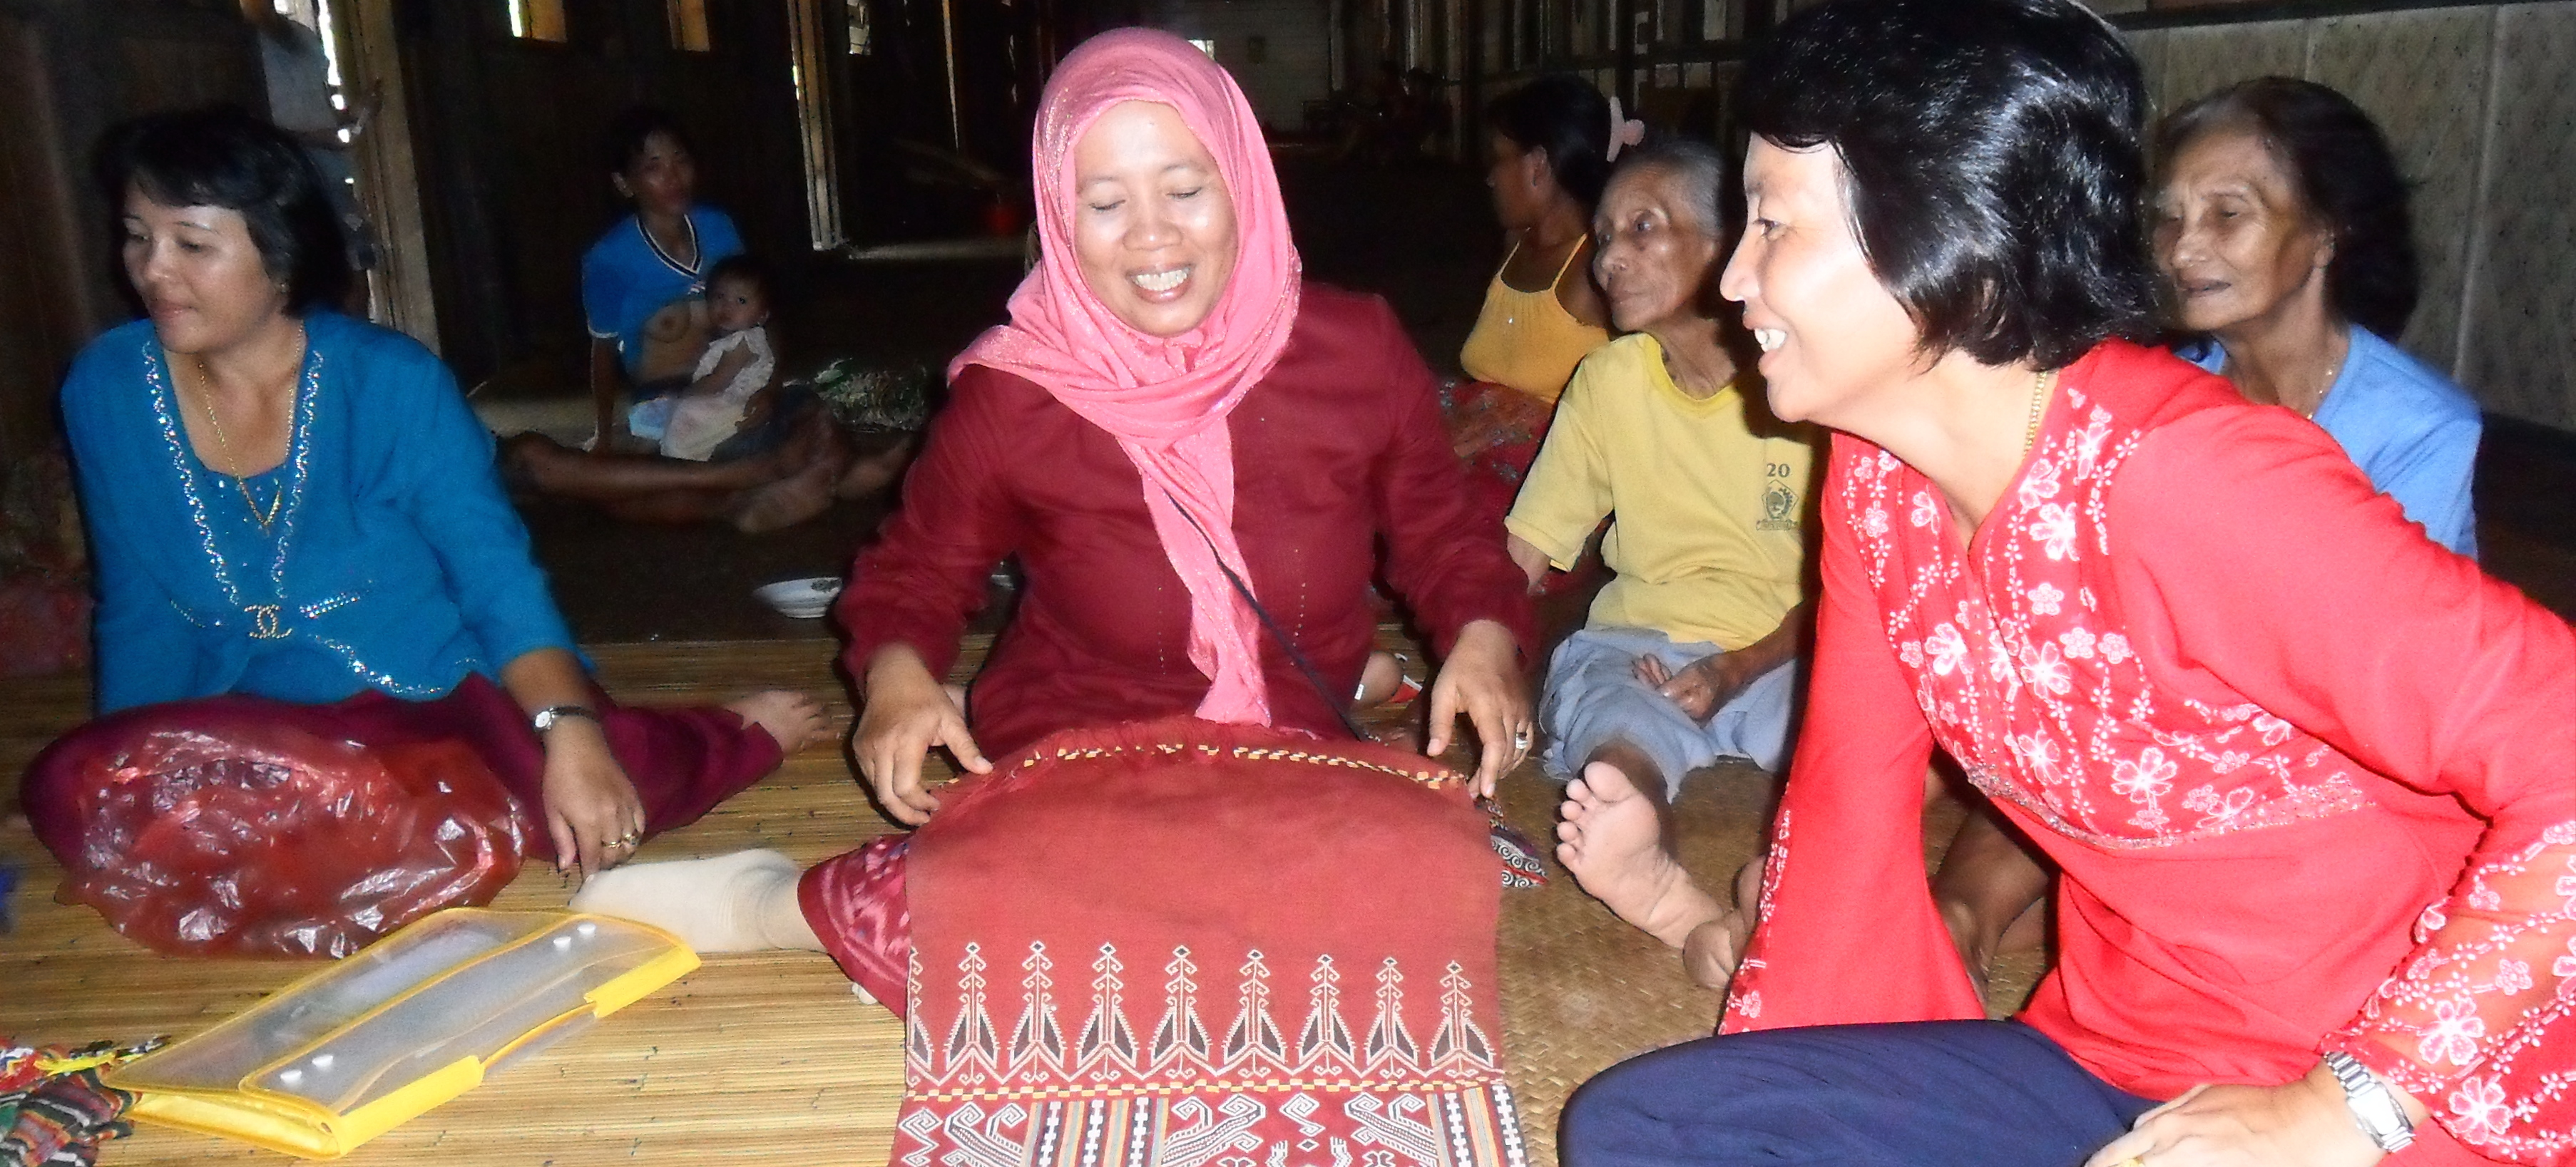 """""""Talking about Dayak Ikat weaving is not just talking about preserving the culture of the Dayak community only, but we are talking how to develop the local economy which was initiated and developed in accordance with local knowledge, intellectual property and the Dayak community as well talk about Kalimantan forest wealth with natural dyes."""" – Fifiyati Hoesni, PRCF Indonesia"""